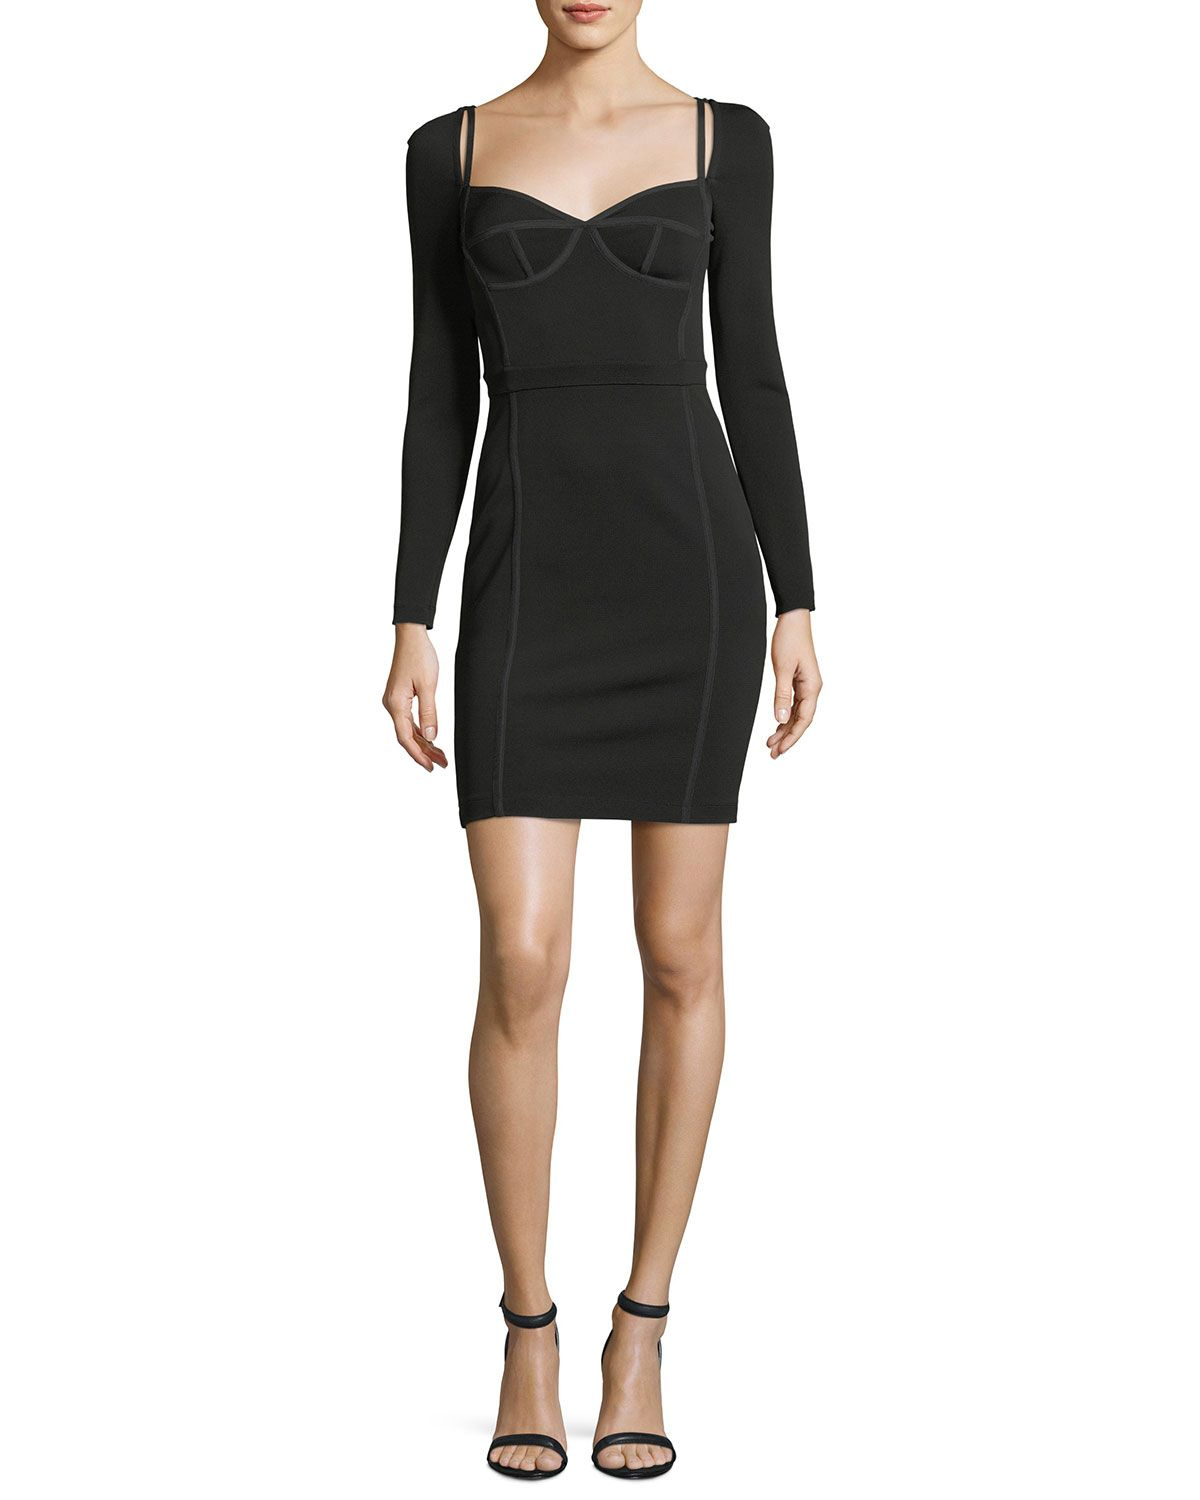 Black bustier dress with long sleeves going out formal pinterest